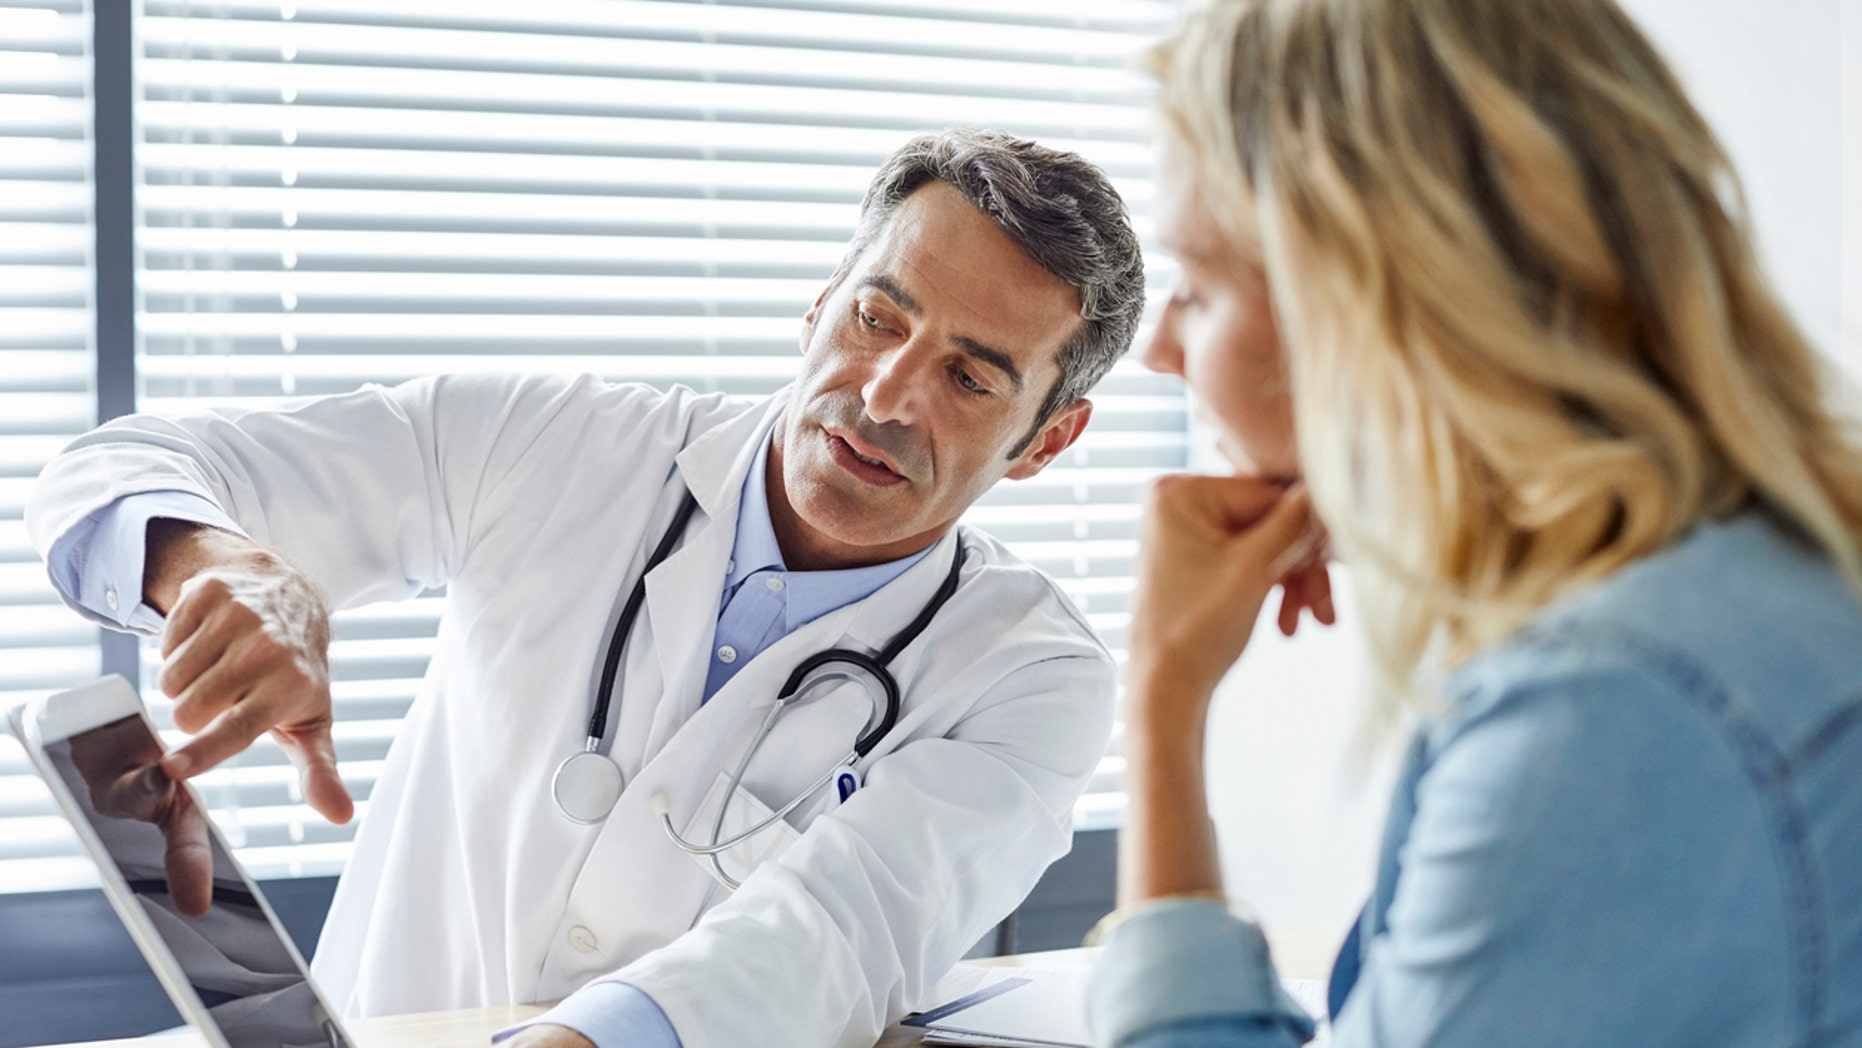 Cervical cancer was once a leading cause of cancer death for women in the U.S., but the death rate has been cut in half thanks mostly to screening.